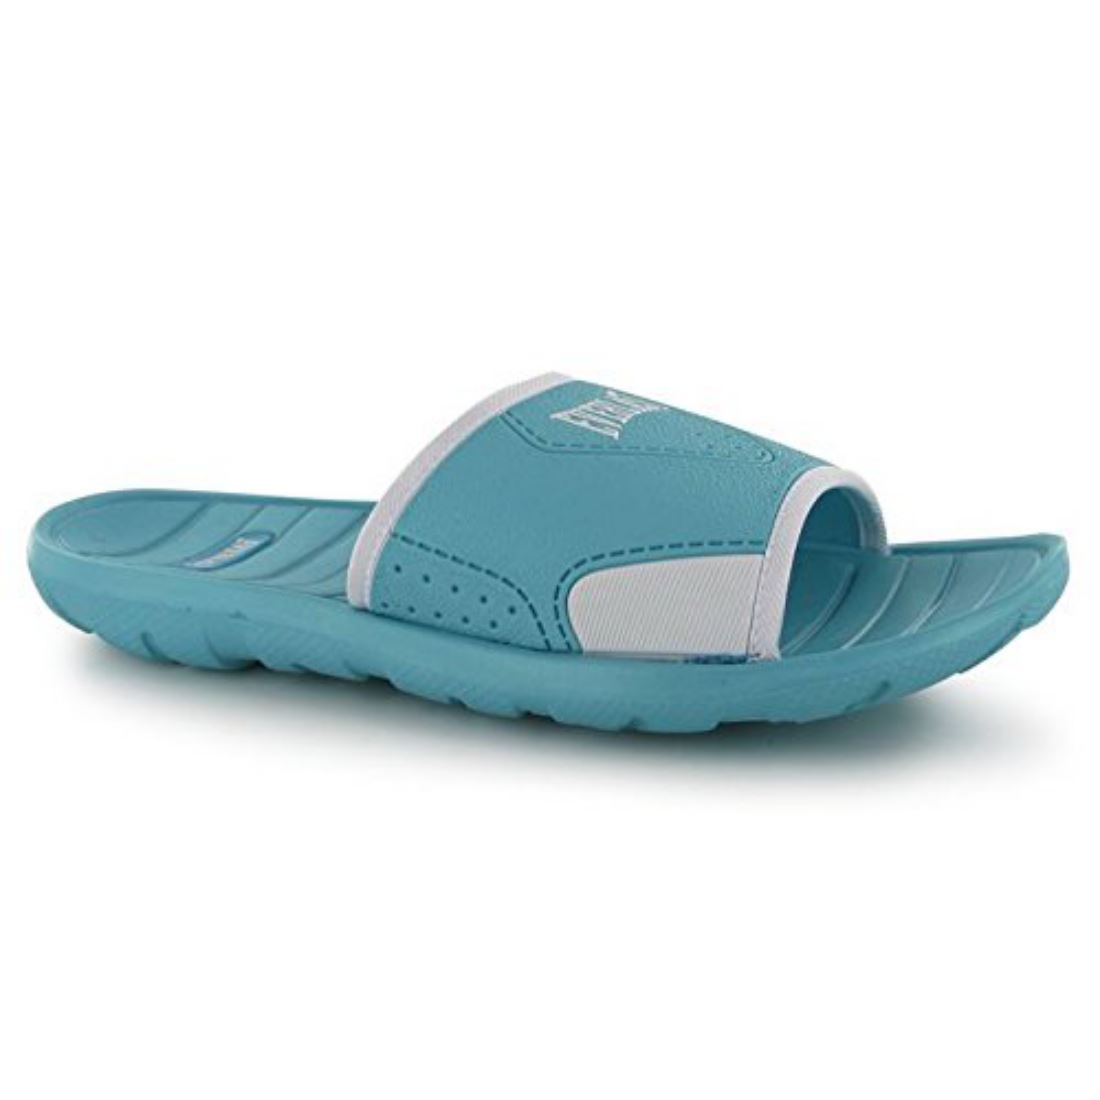 Water Shoes For Women Sports Dierect